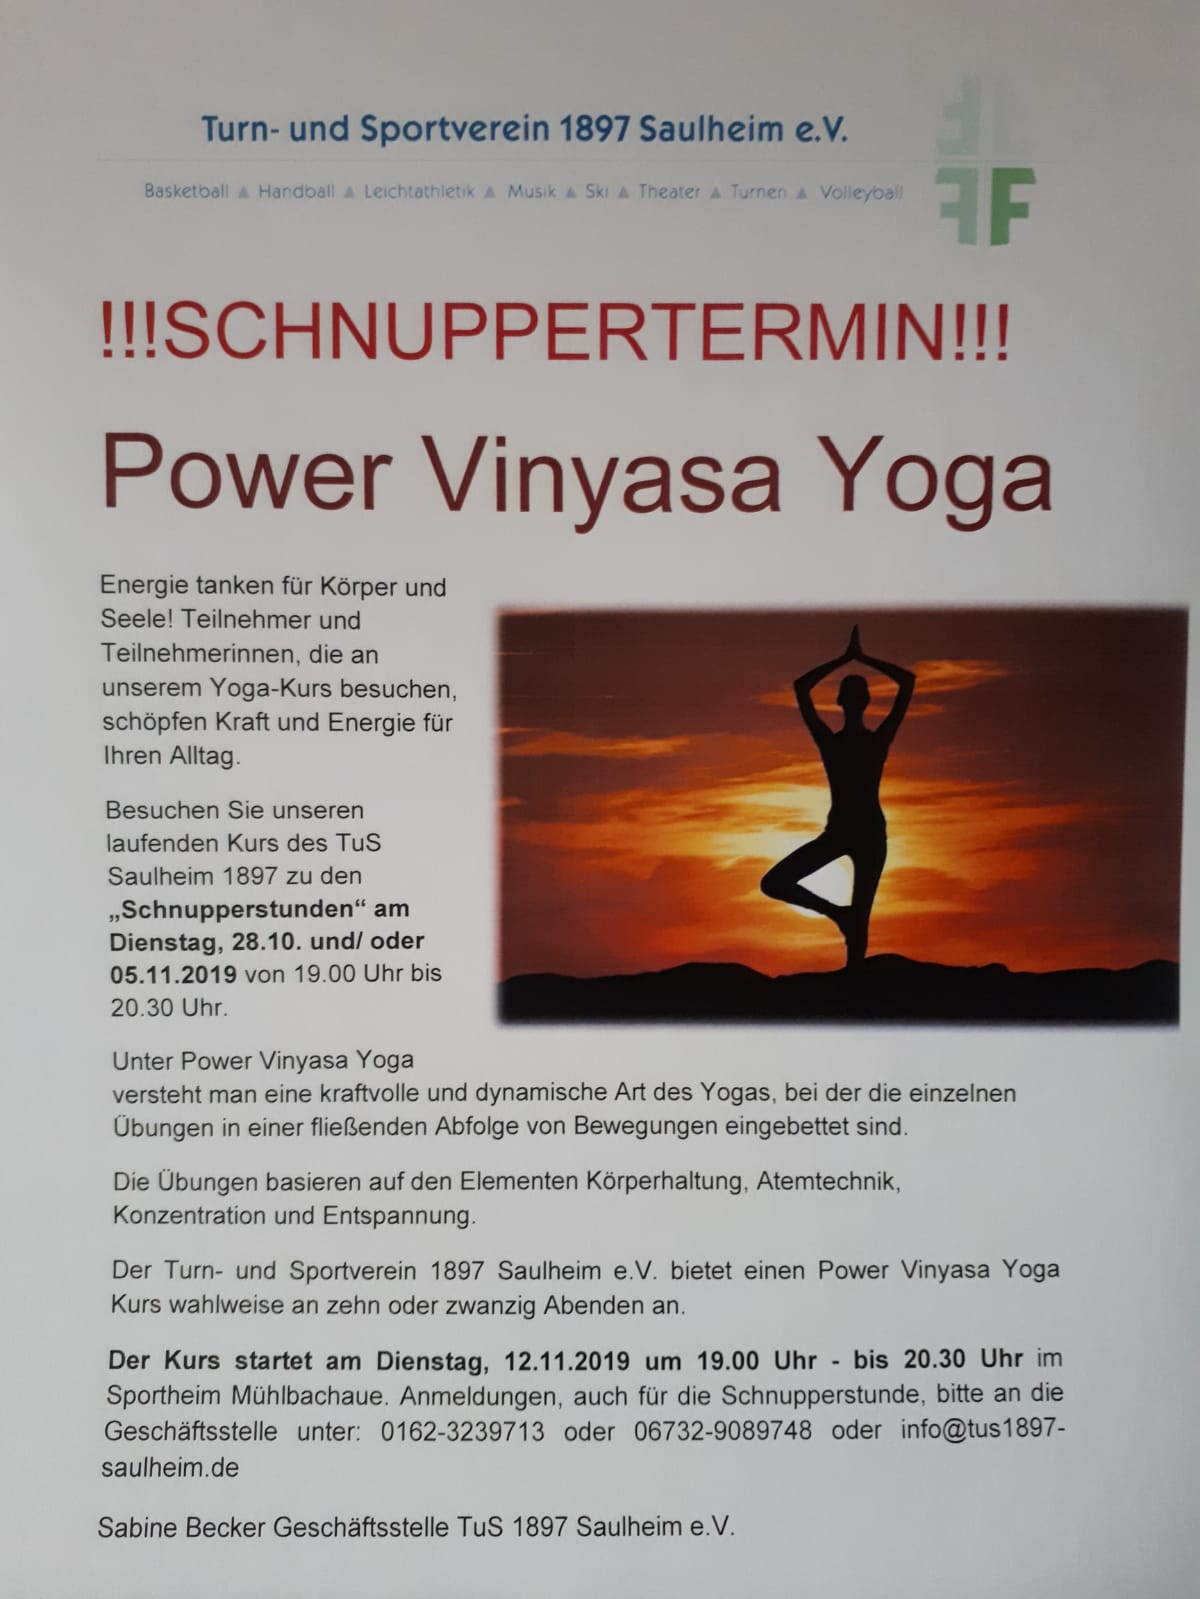 Schnuppertermin - Power Vinyasa Yoga @ Sportheim Mühlbachaue